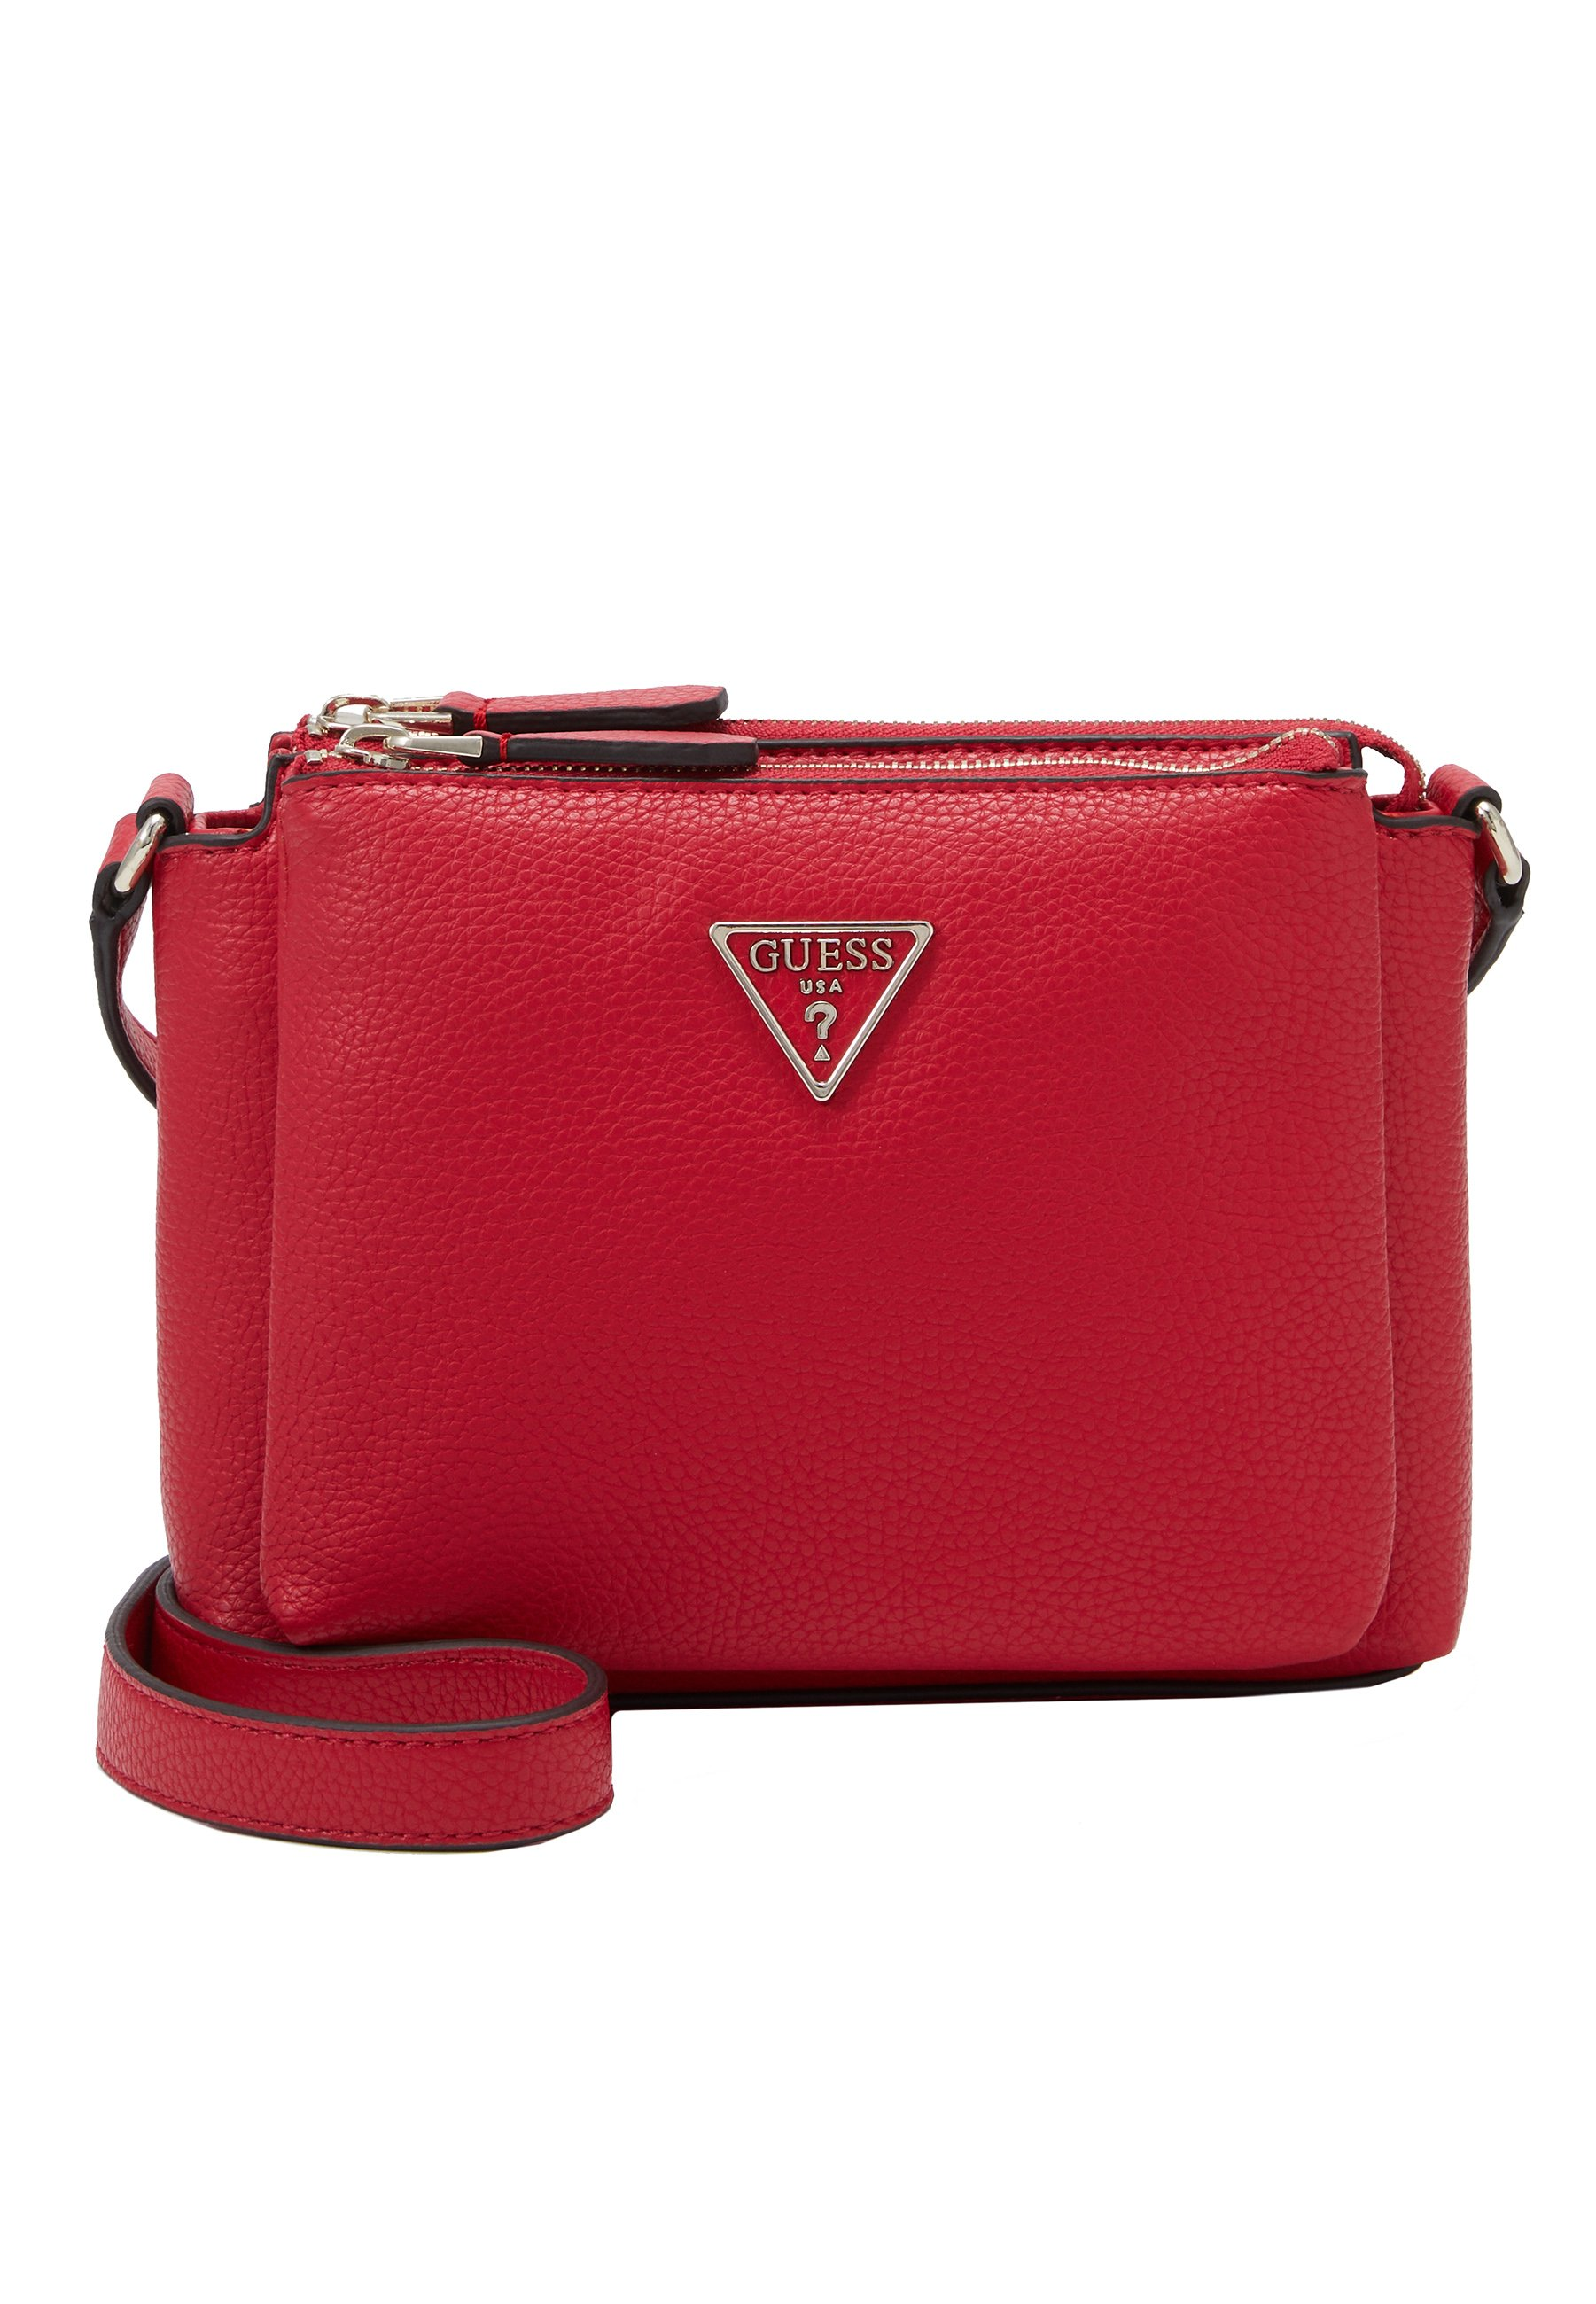 Guess Becca Double Zip Crossbody - Borsa A Tracolla Blush Multi dymJw